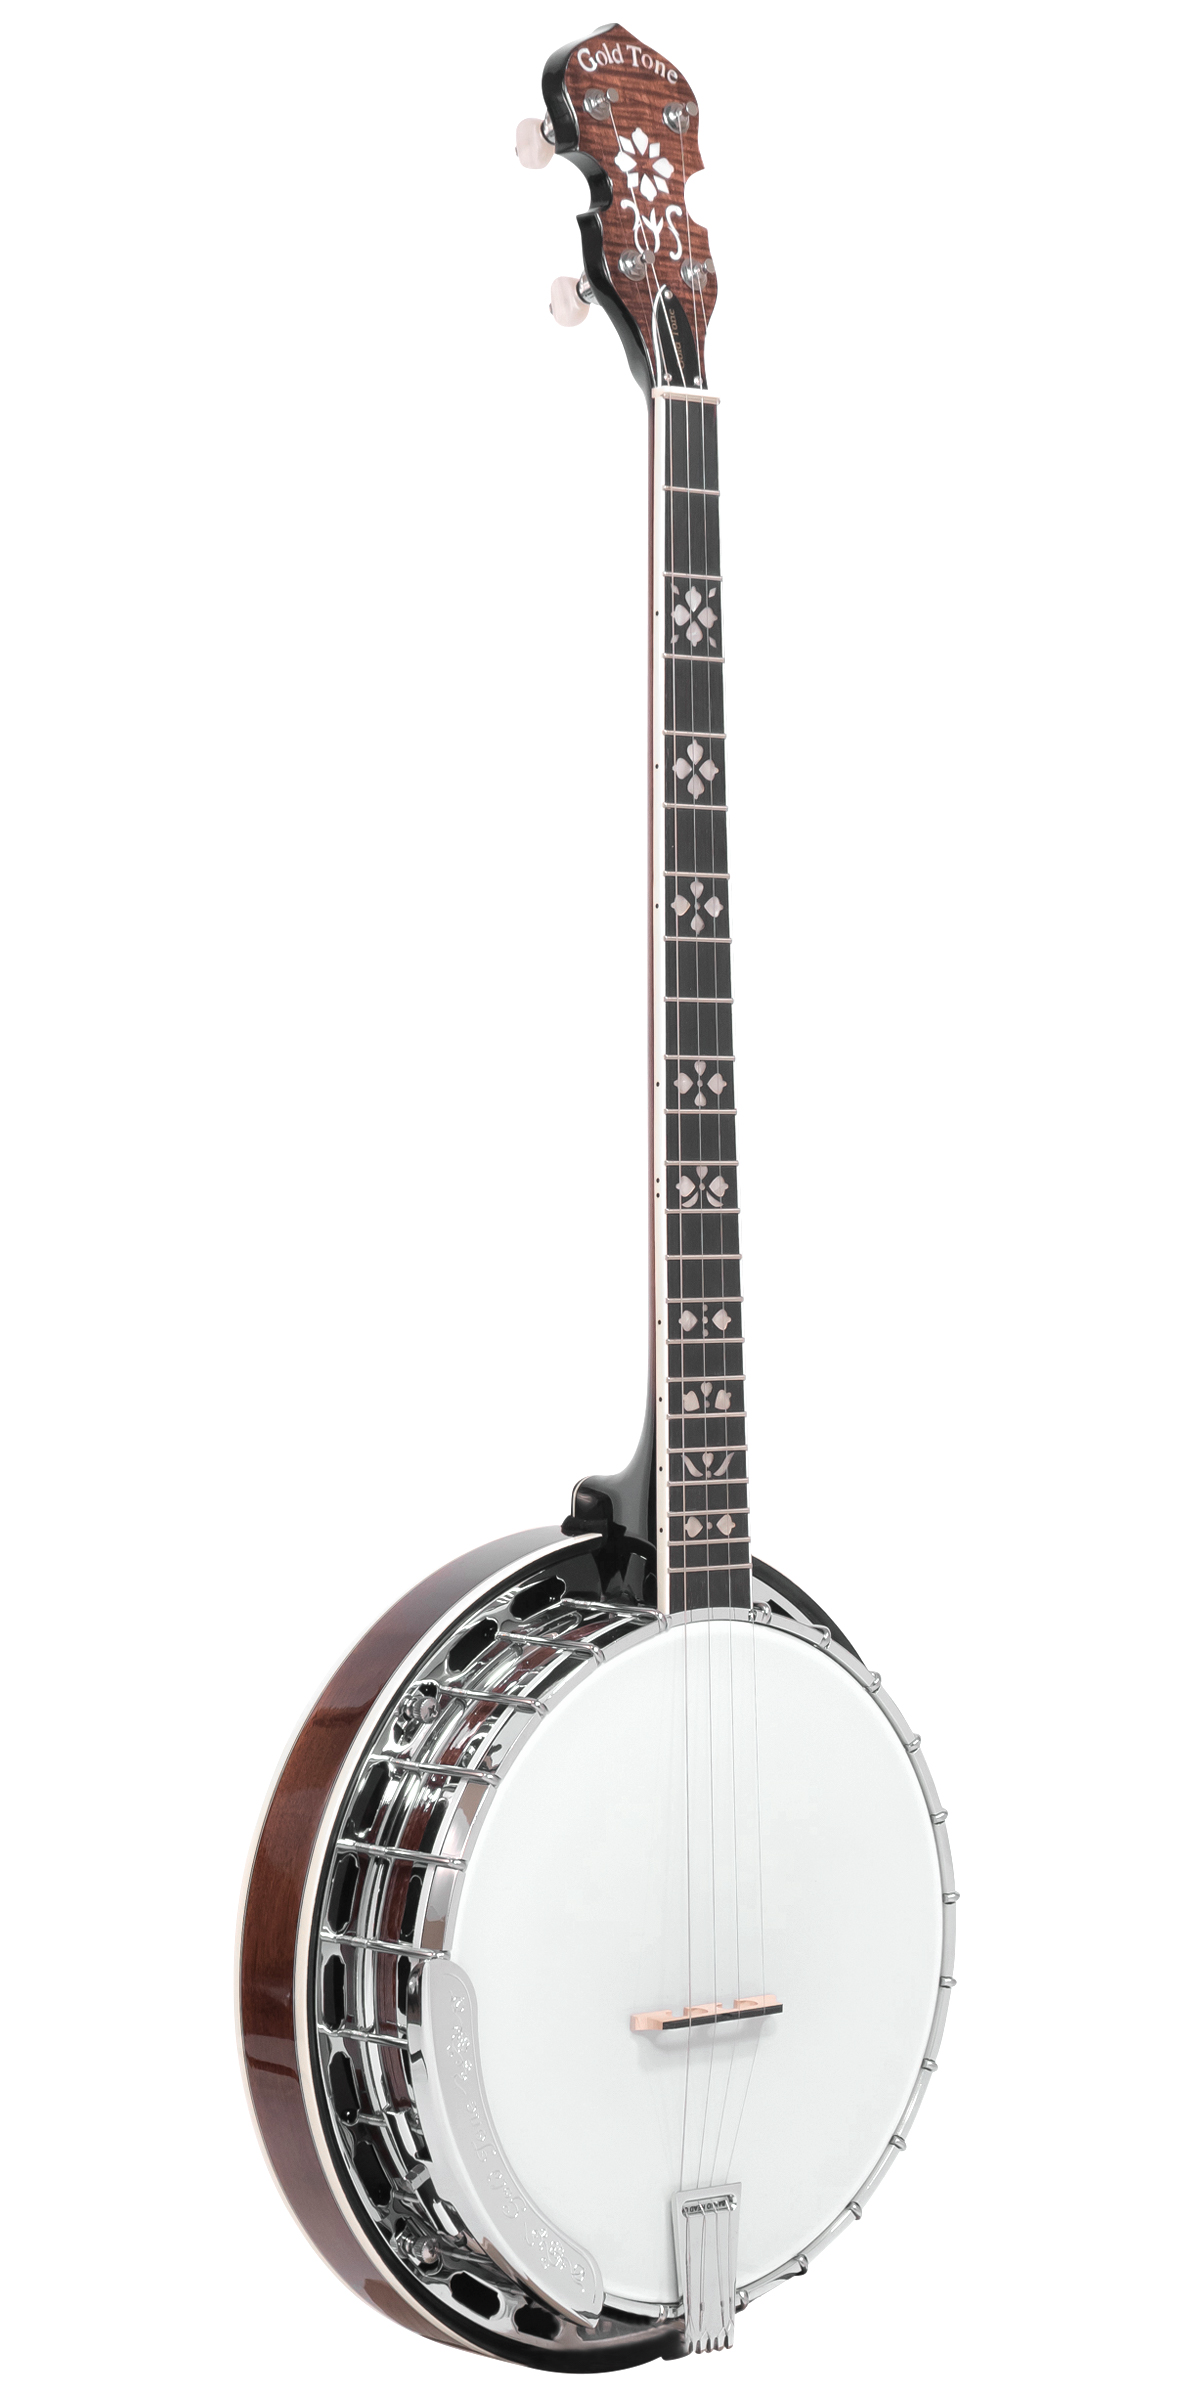 PS-250: Plectrum Special Banjo